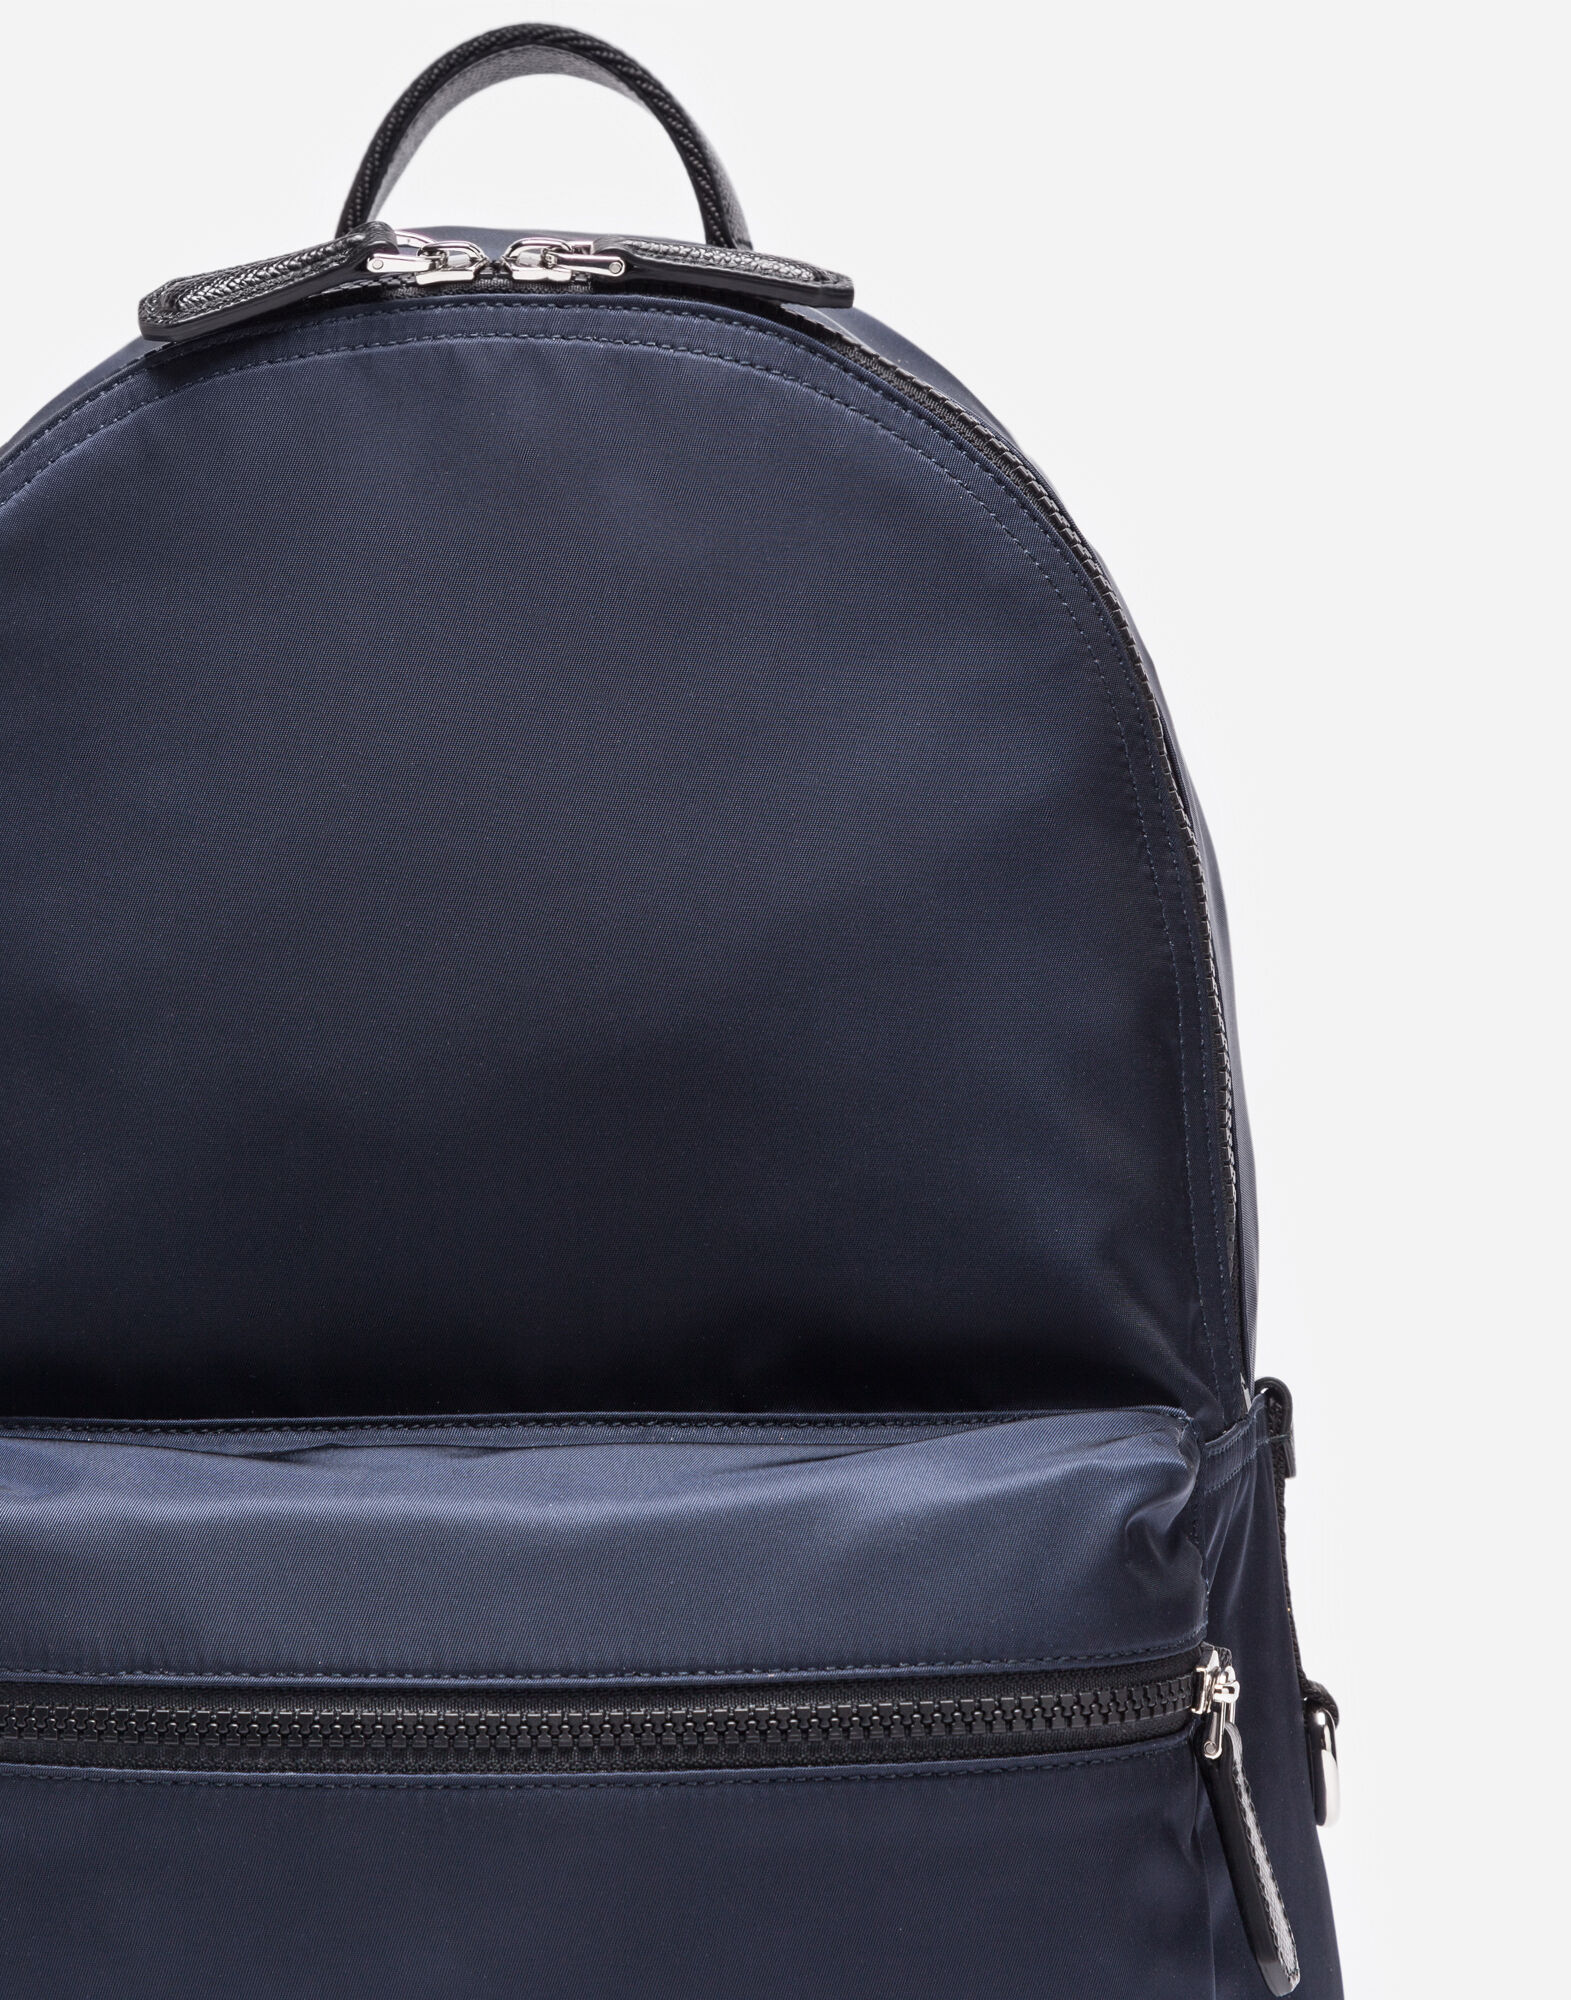 VULCANO BACKPACK IN NYLON